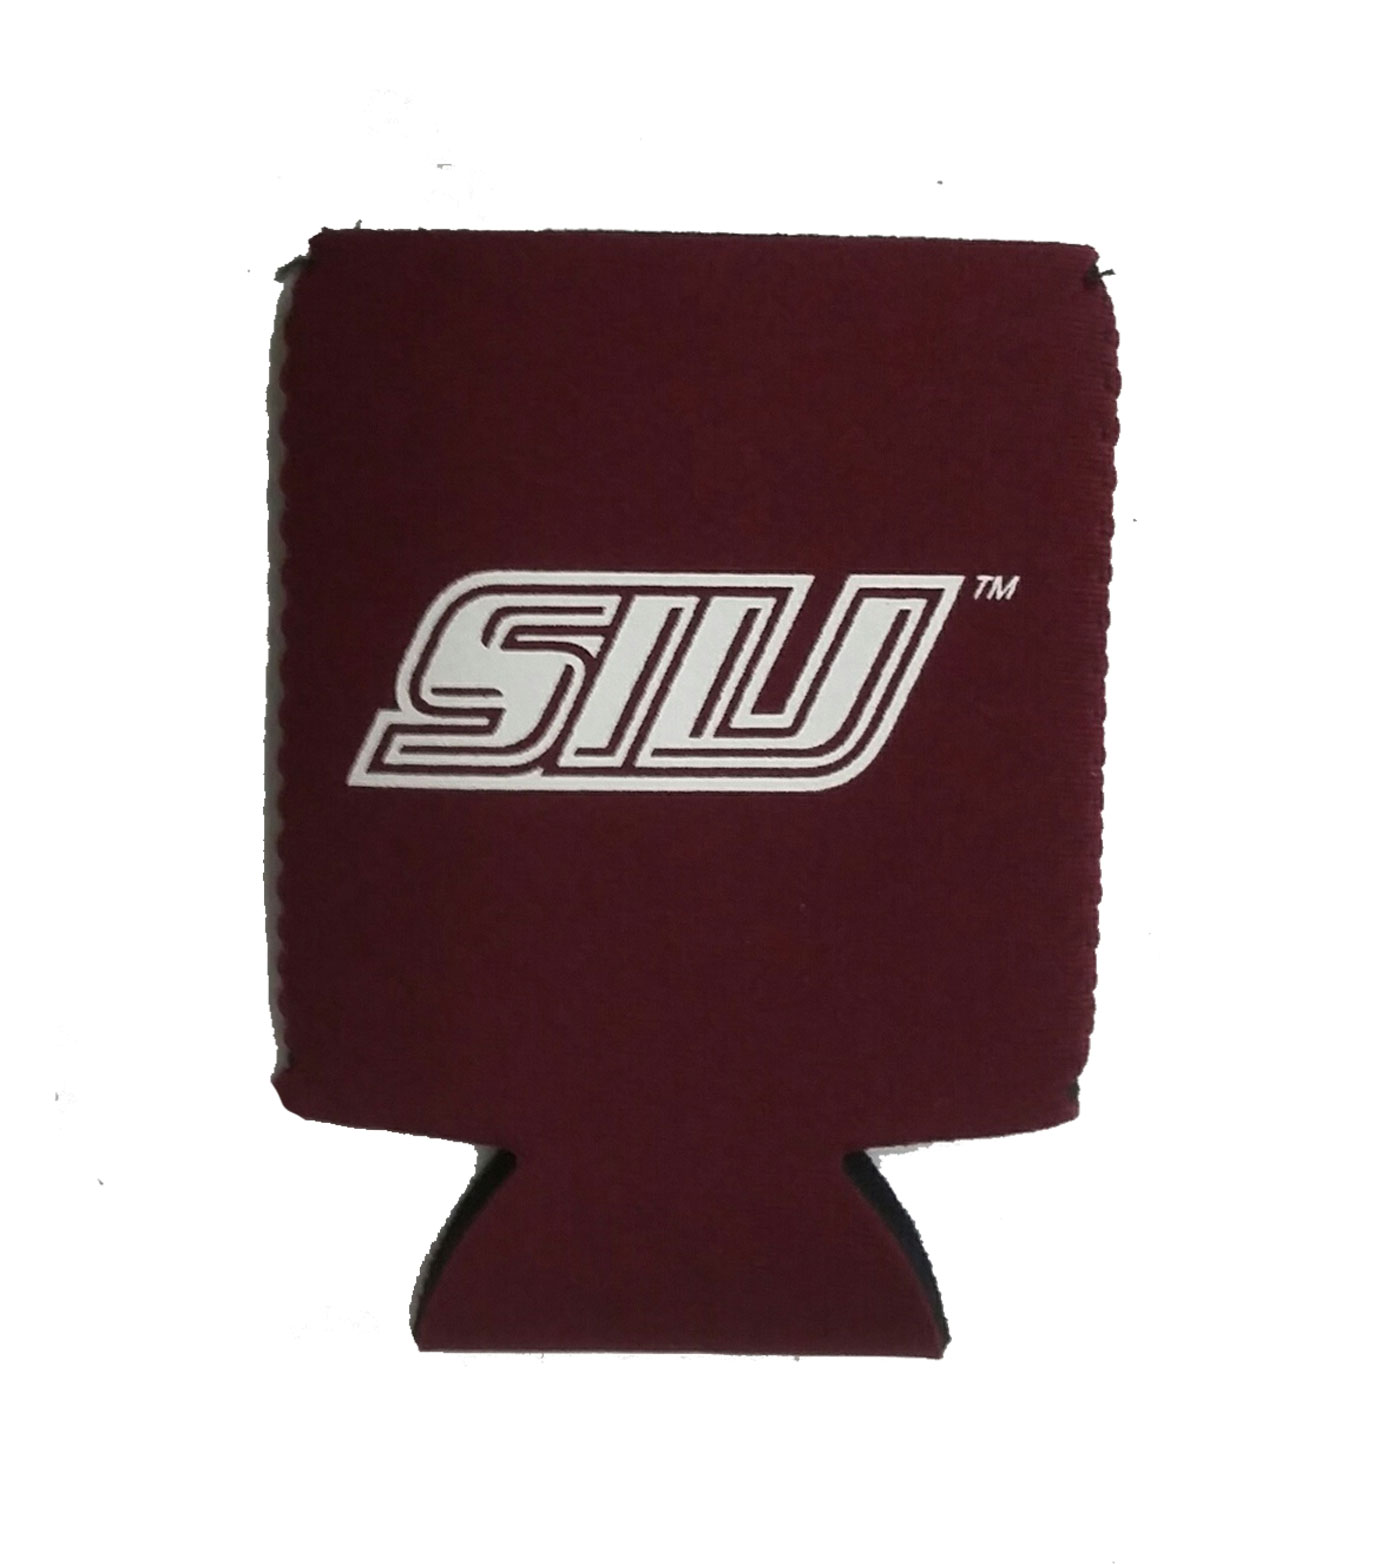 Image for the SIU MAROON COLLAPSIBLE CAN COOZIE product